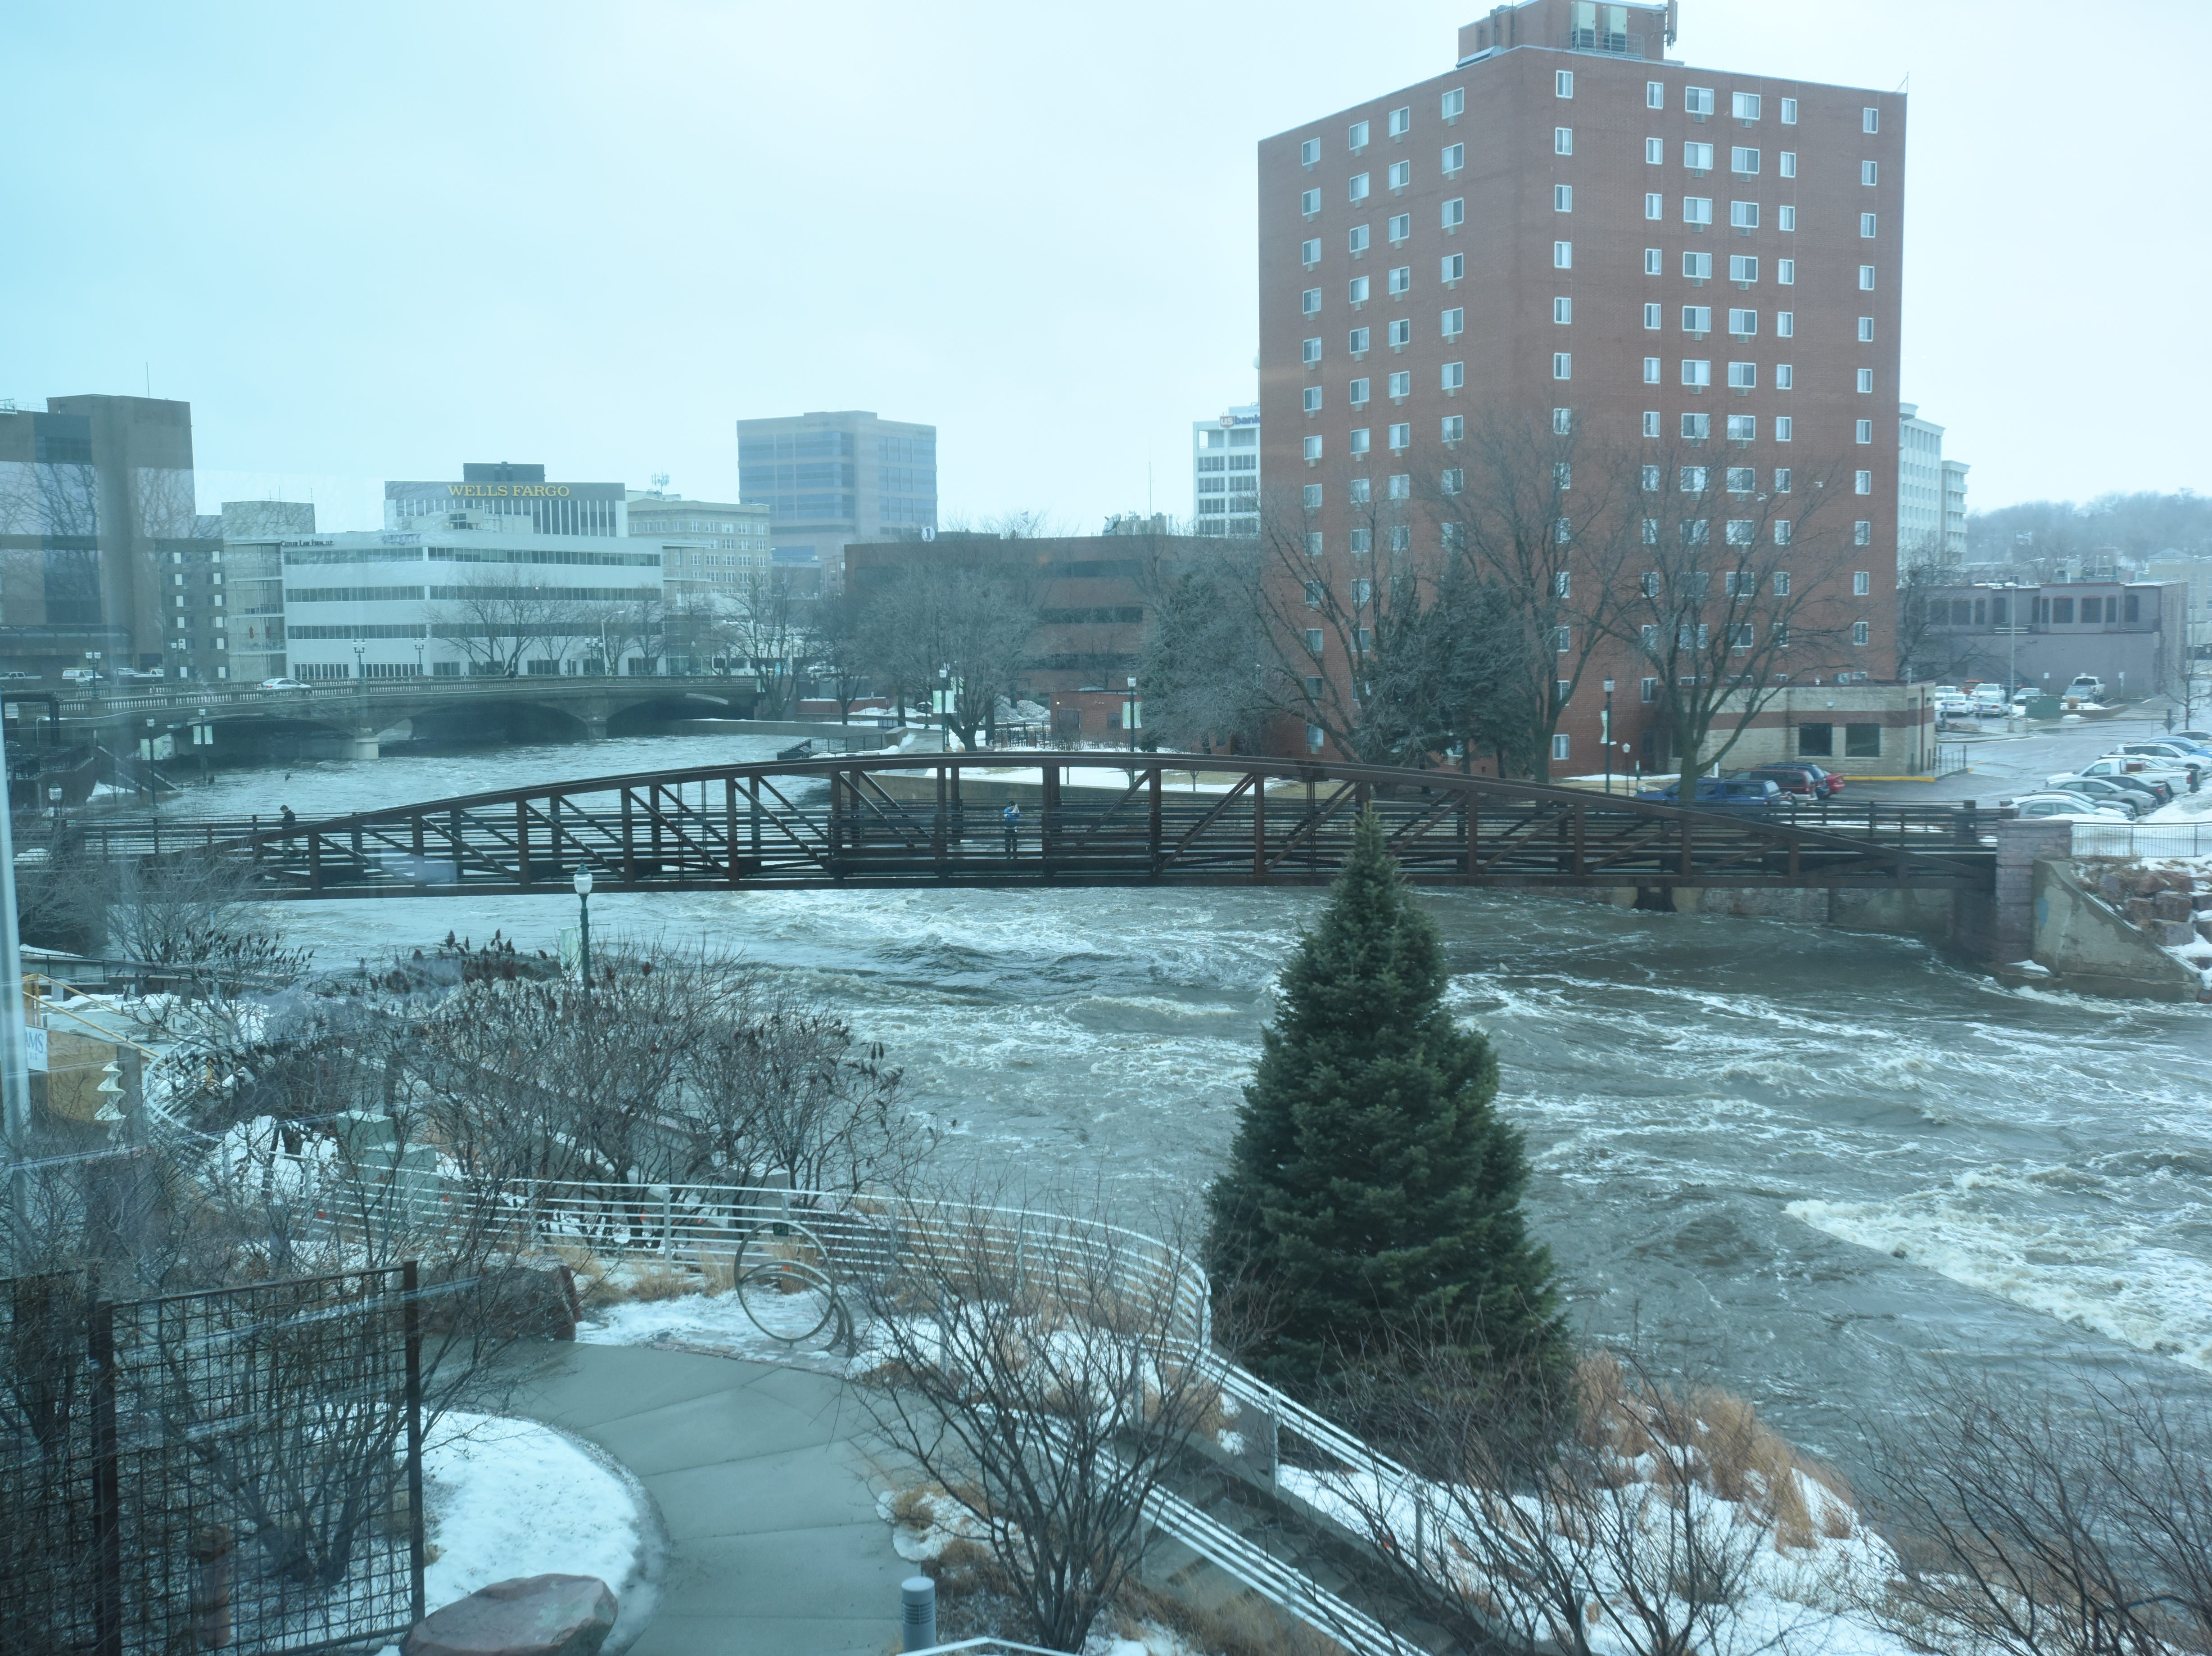 The Big Sioux River rose to a dangerous level Thursday, March 14, after heavy rainfall flooded portions of Sioux Falls.